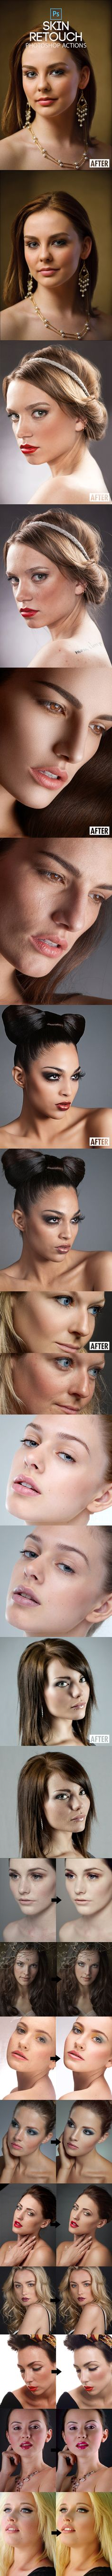 Fast Skin Retouching Actions